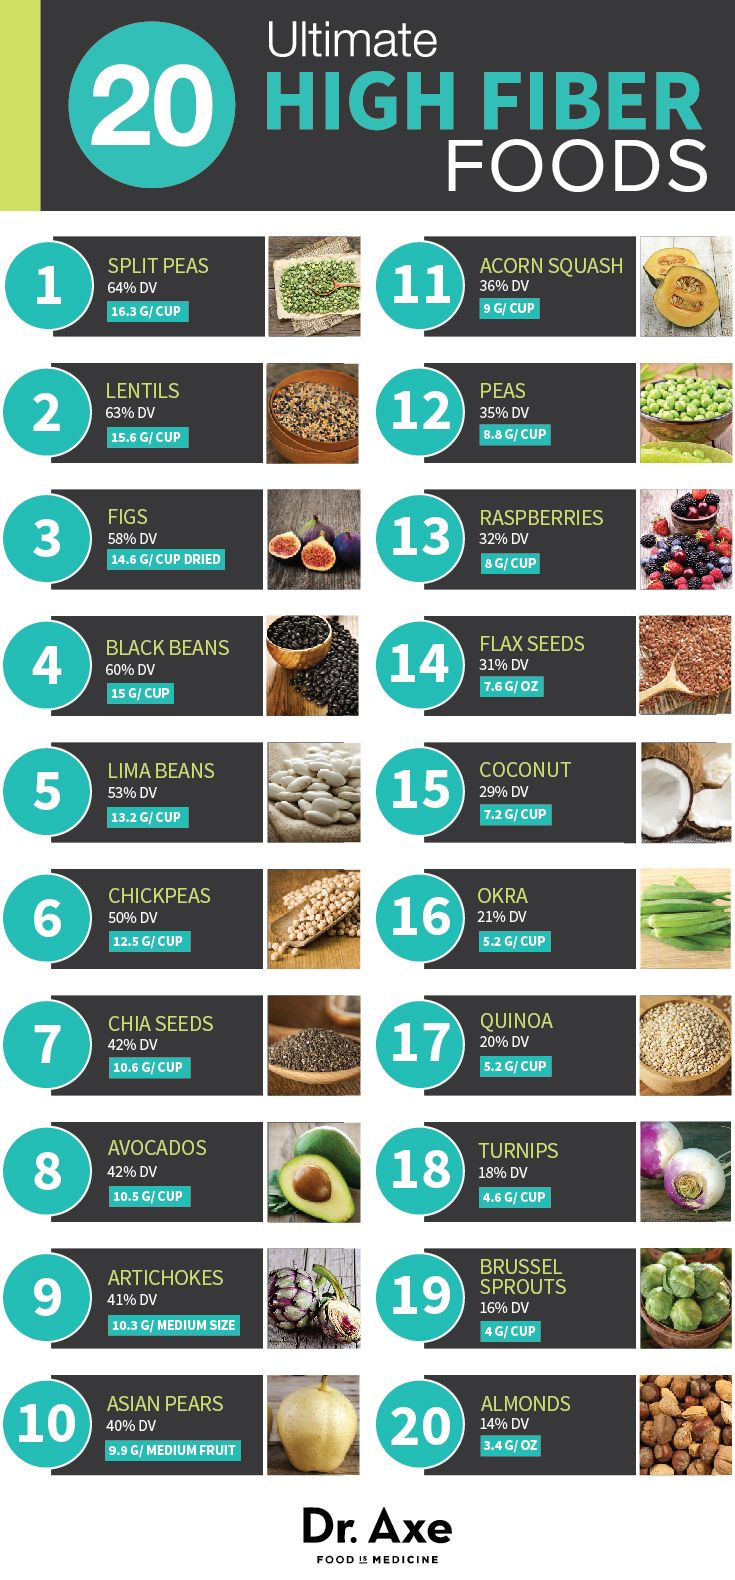 20 Ultimate High Fiber Foods http://www.draxe.com #health #natural #holistic…